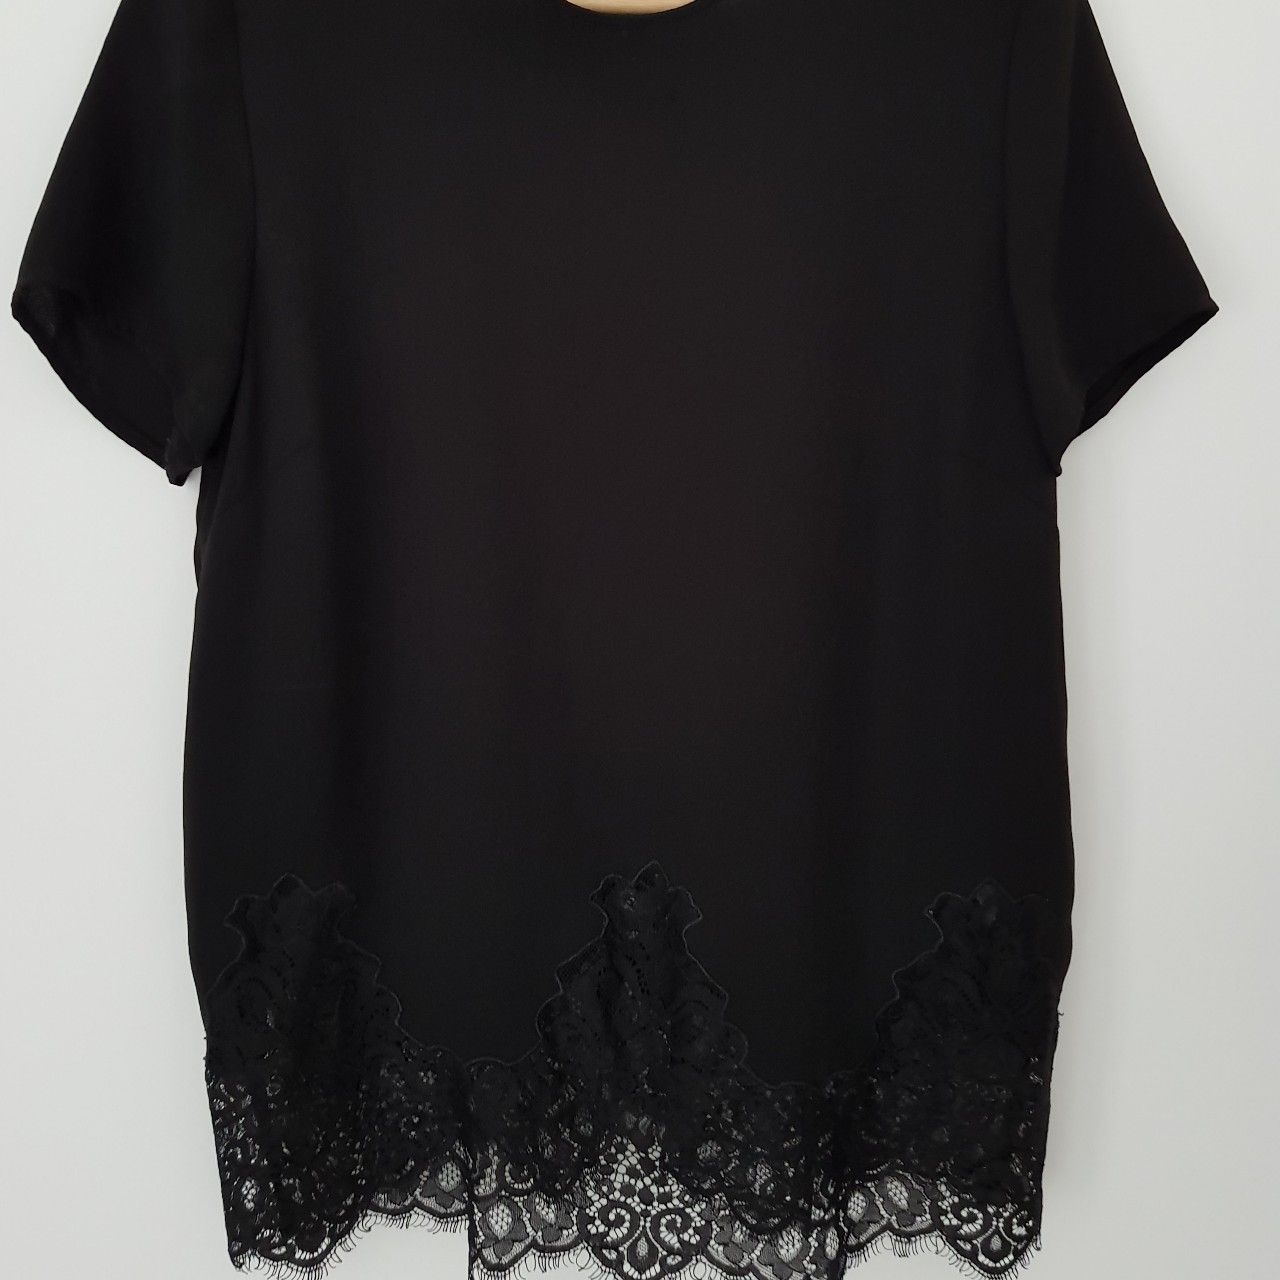 c436ad73a8a Fancy black top with lace from New Look Plain... - Depop